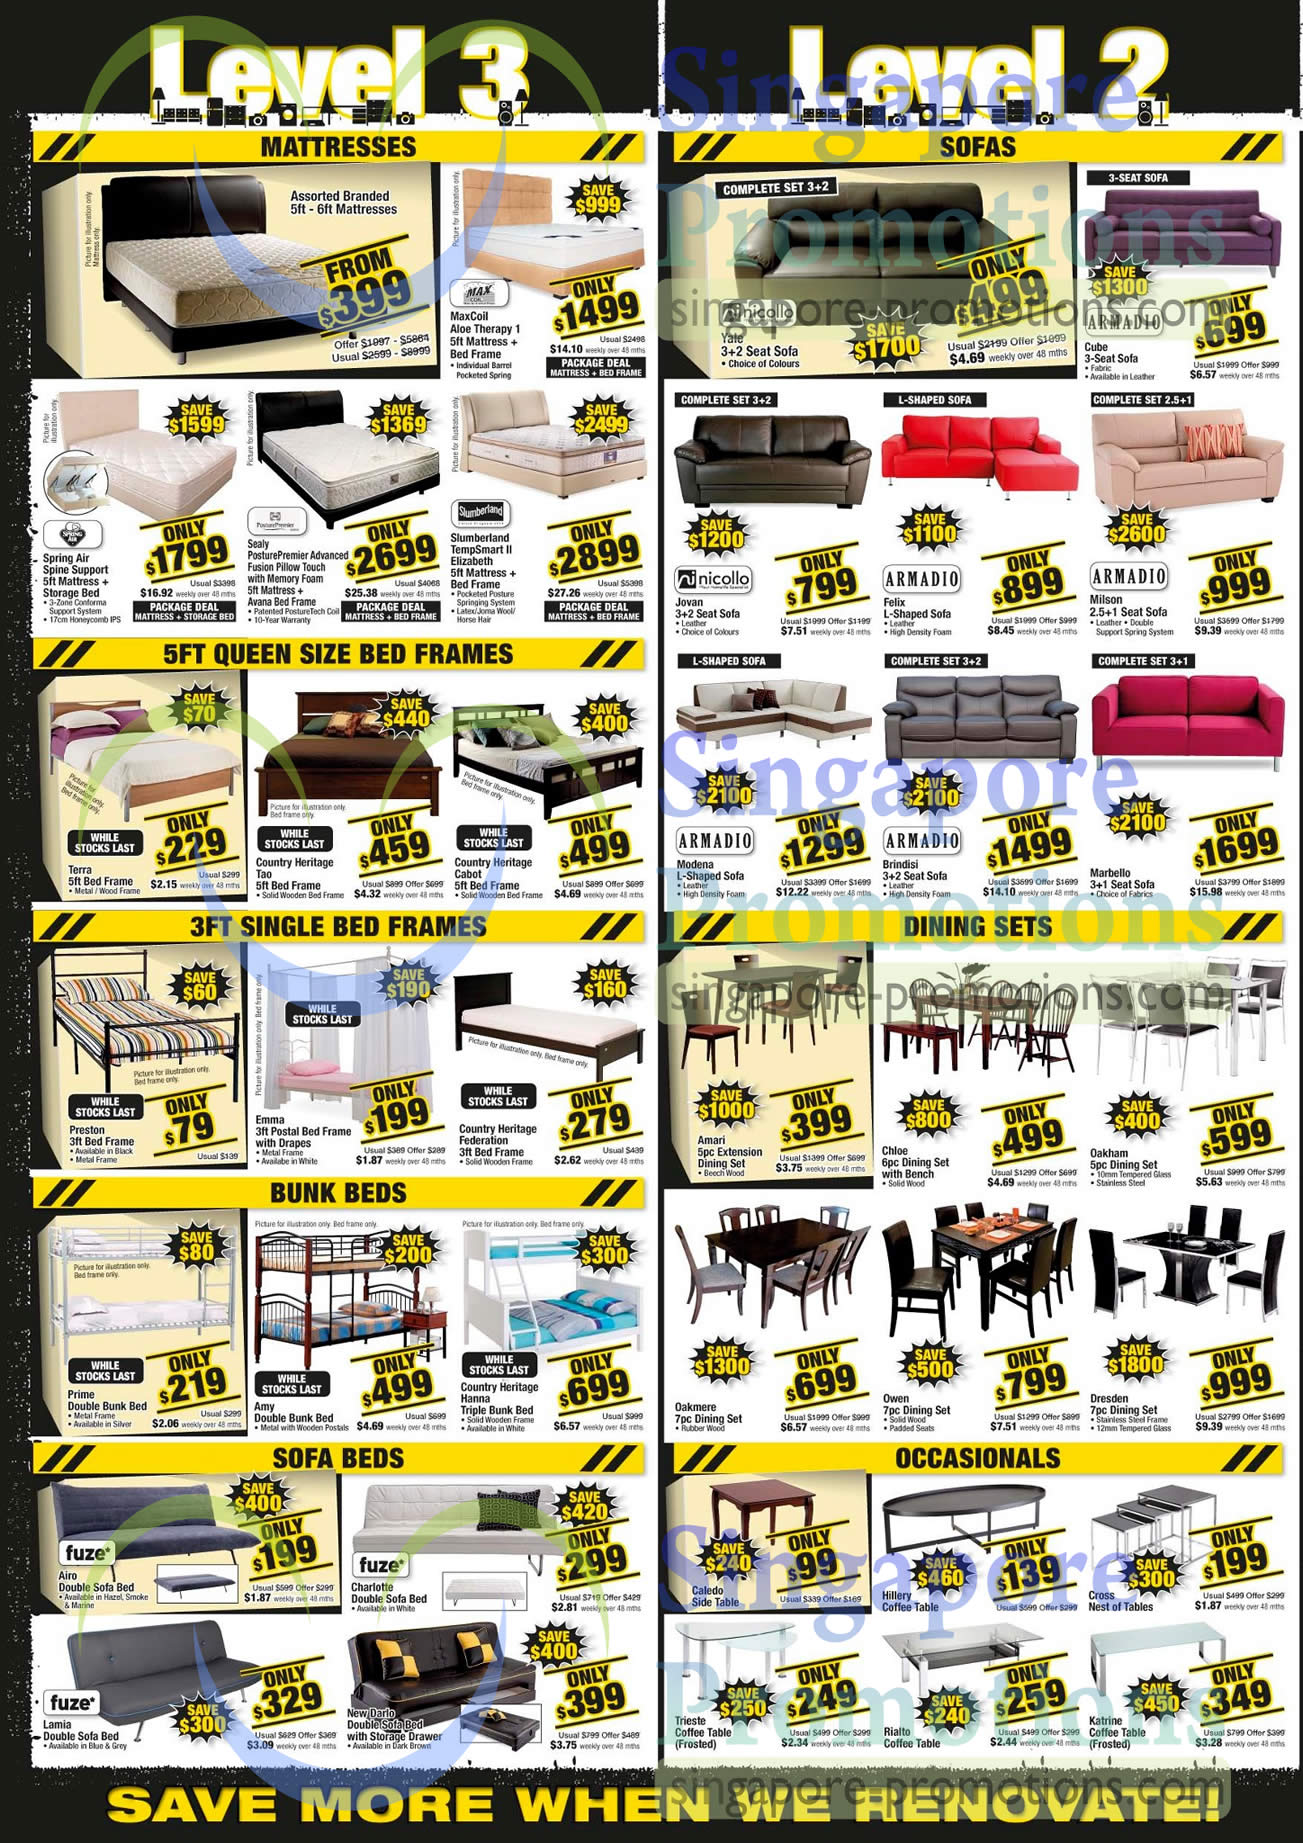 mattresses bed frames sofa beds sofa sets dinig sets coffee tables fuze nicollo armadio spring air maxcoil slumberland sealy posturepedic - Slumberland Bed Frames